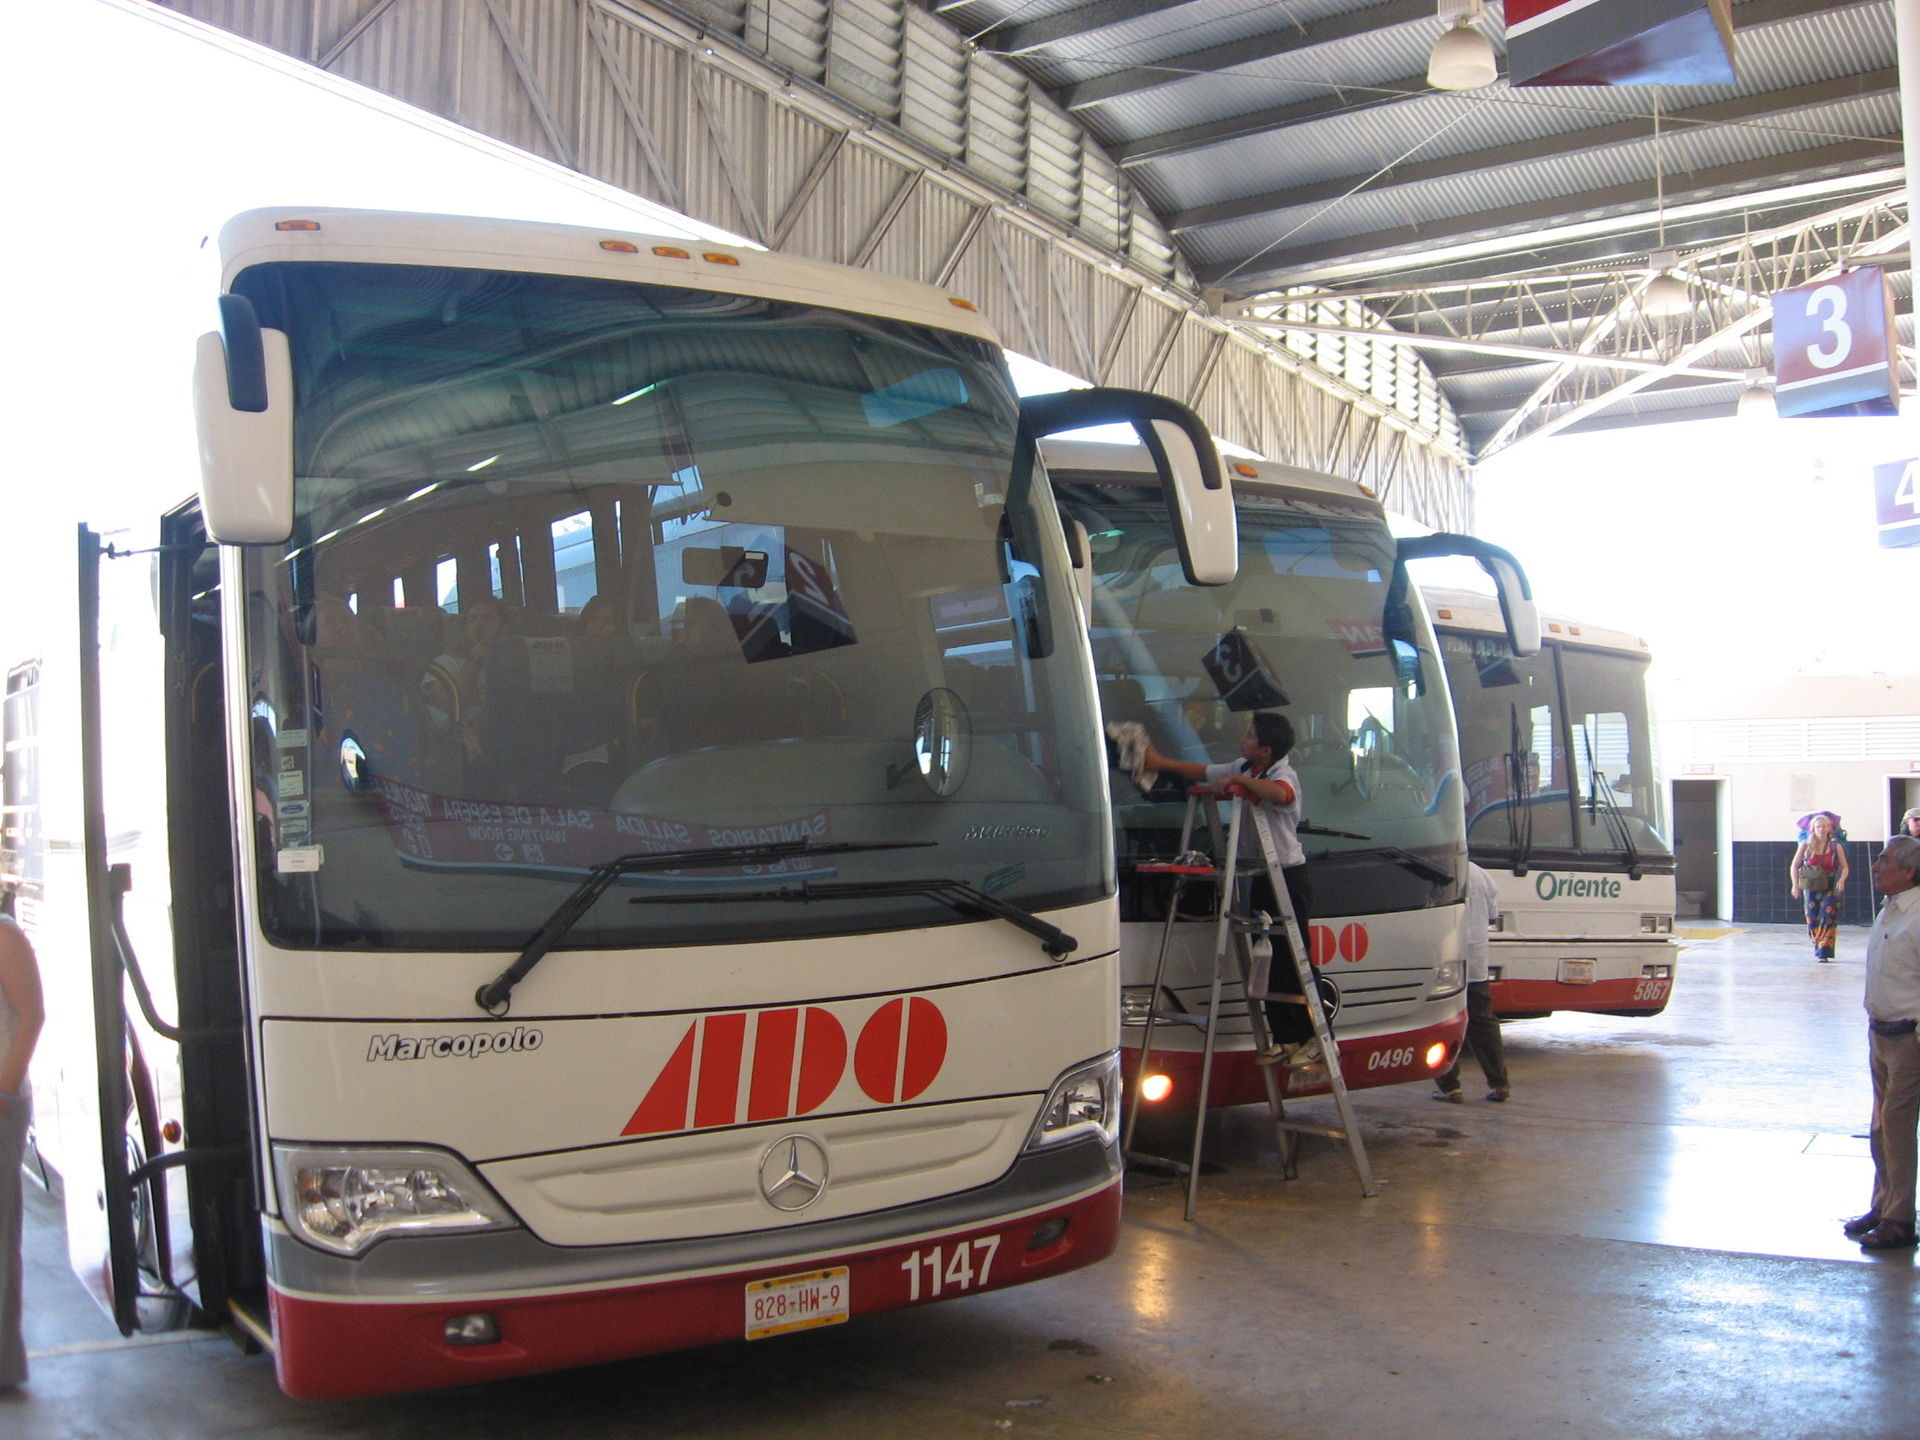 Bus station. Image courtesy of Wikipedia.